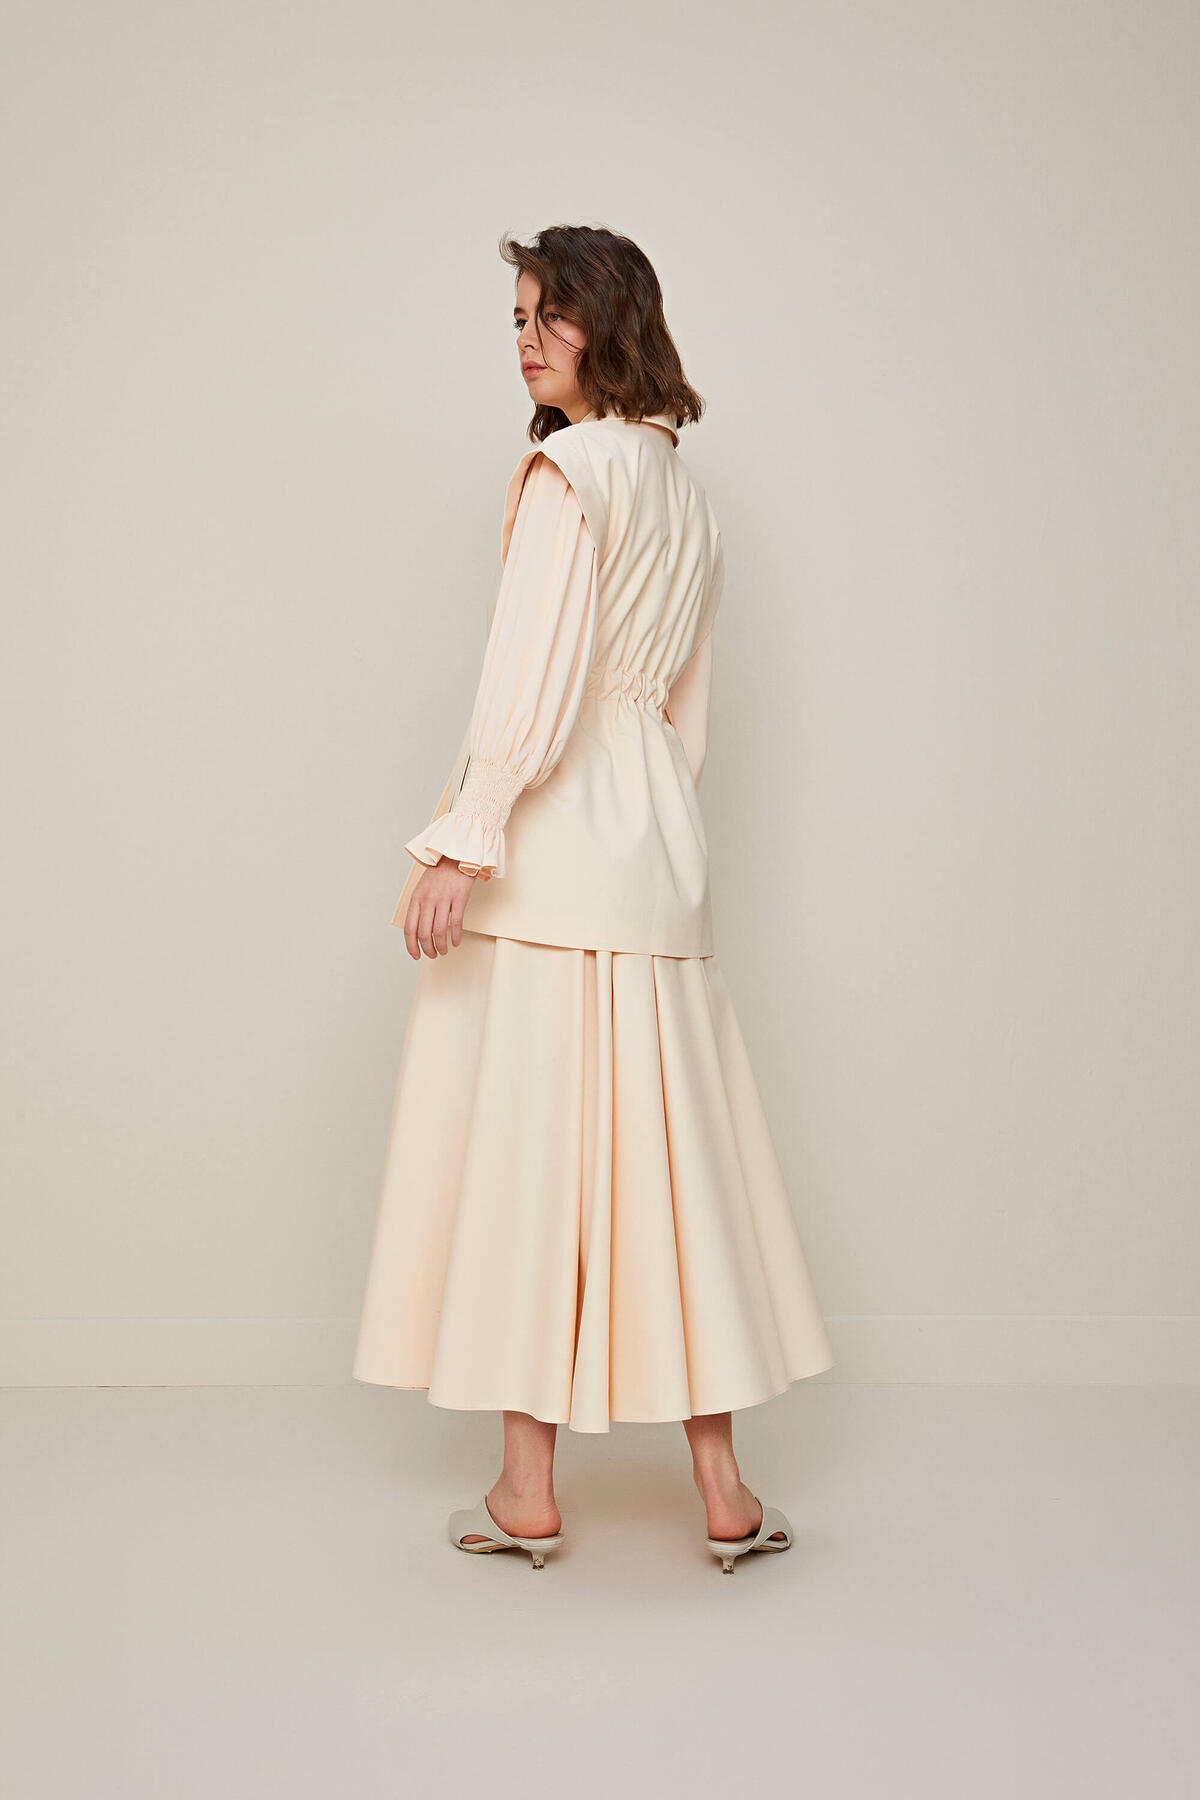 WIDE RUFFLE SKIRT SUIT